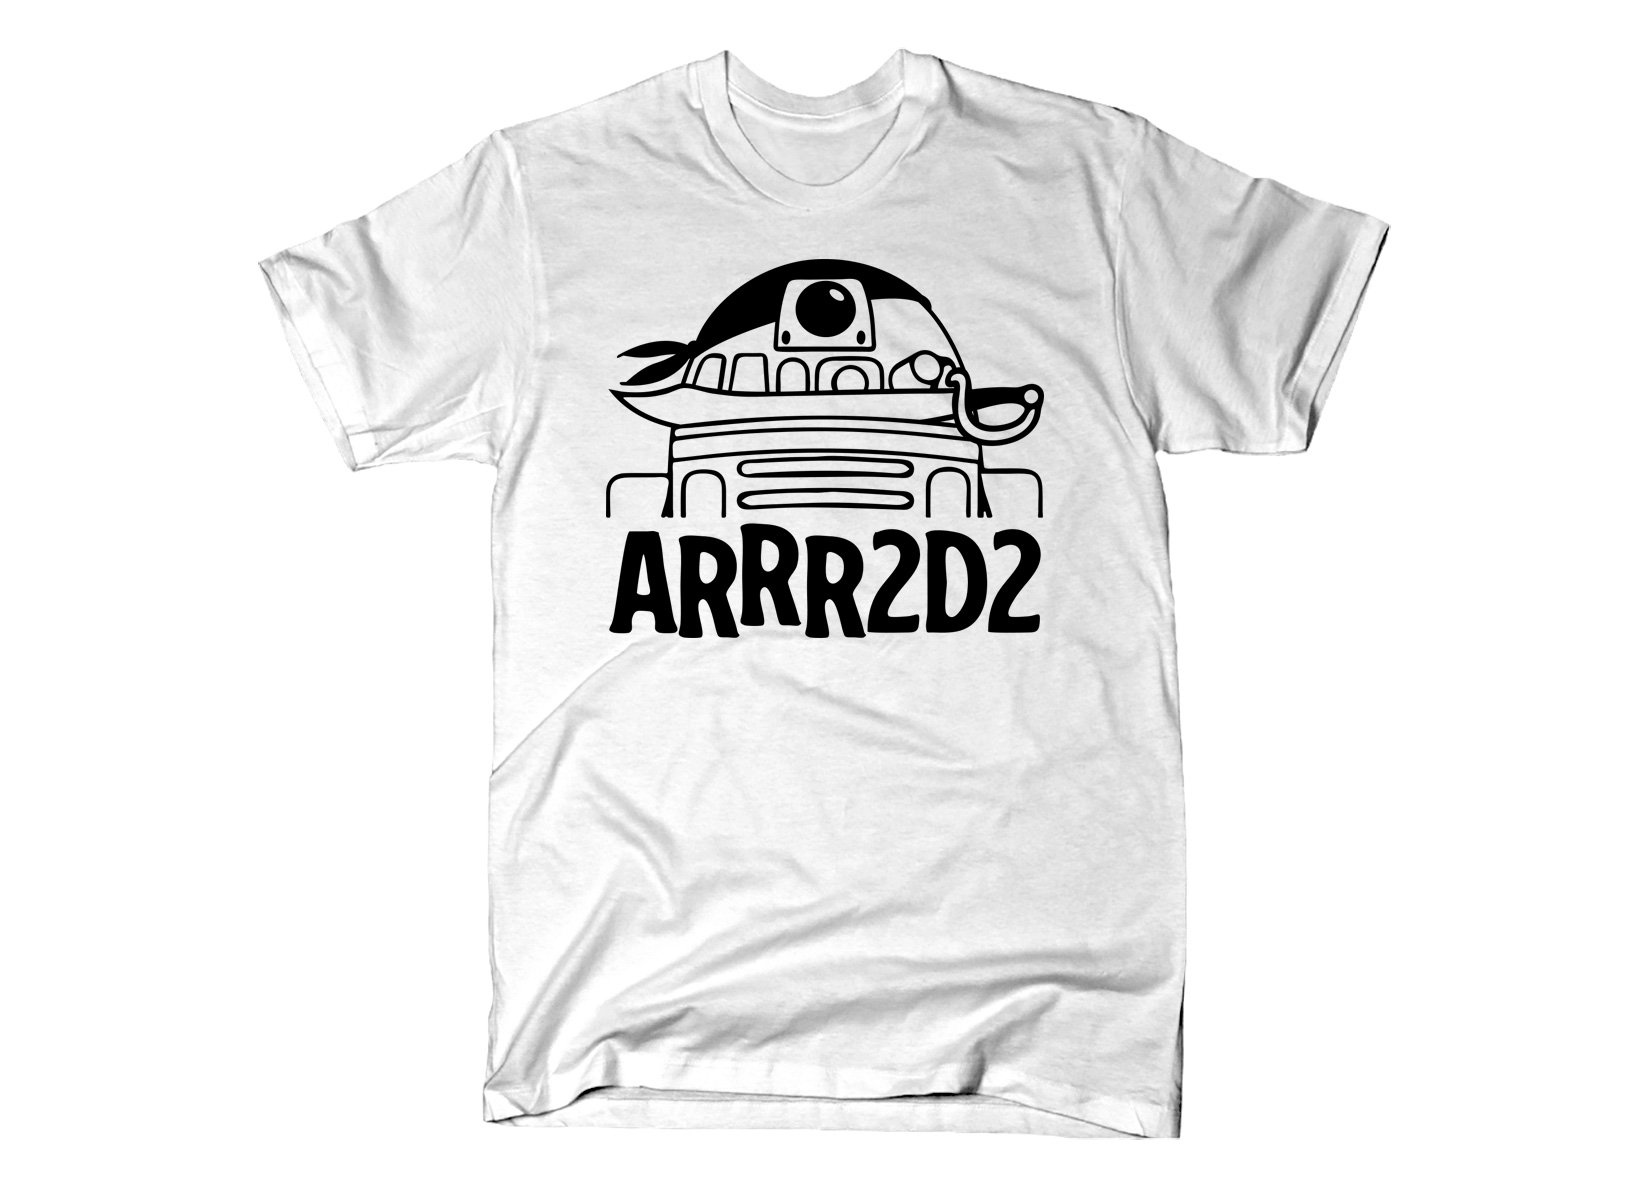 ARRR2D2 on Mens T-Shirt